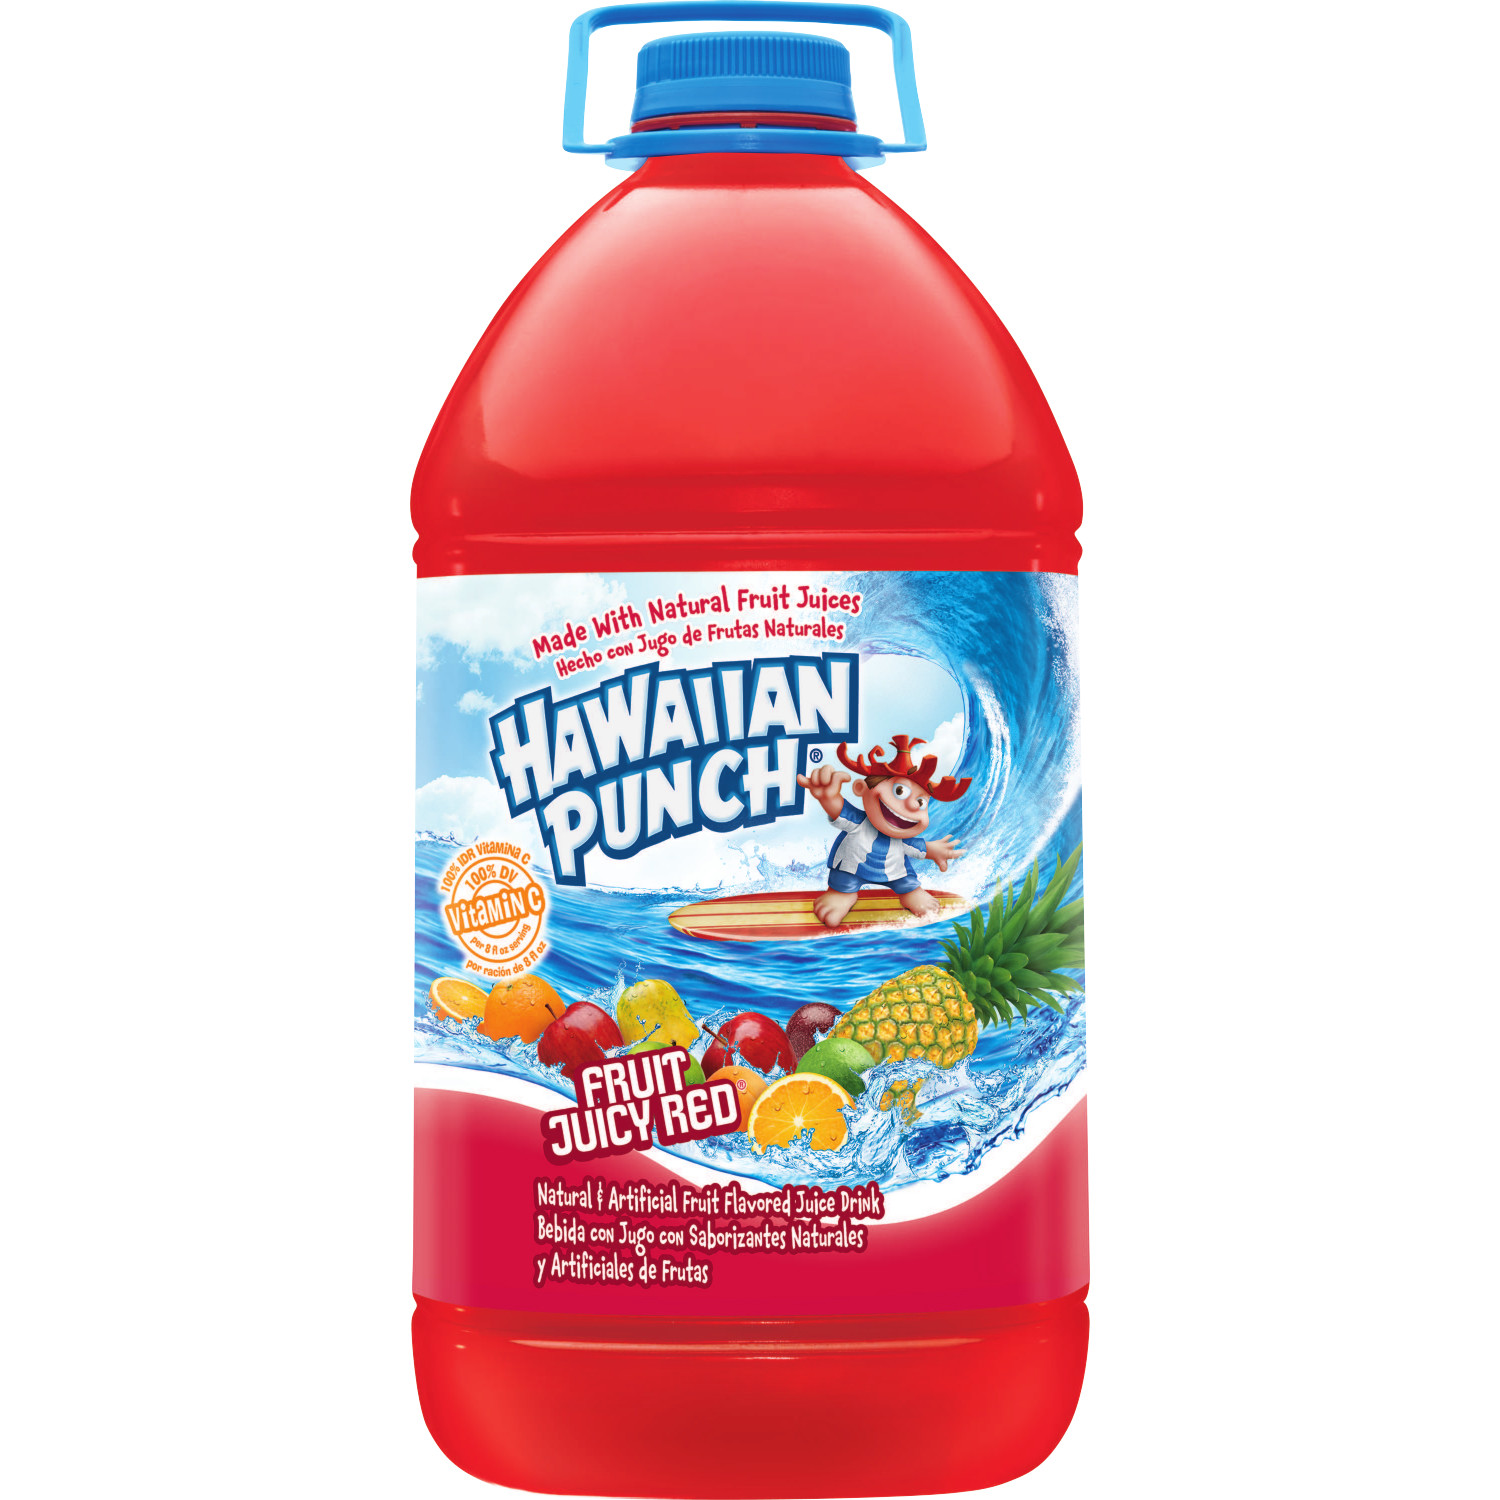 Hawaiian Punch Fruit Juicy Red, 1 gal